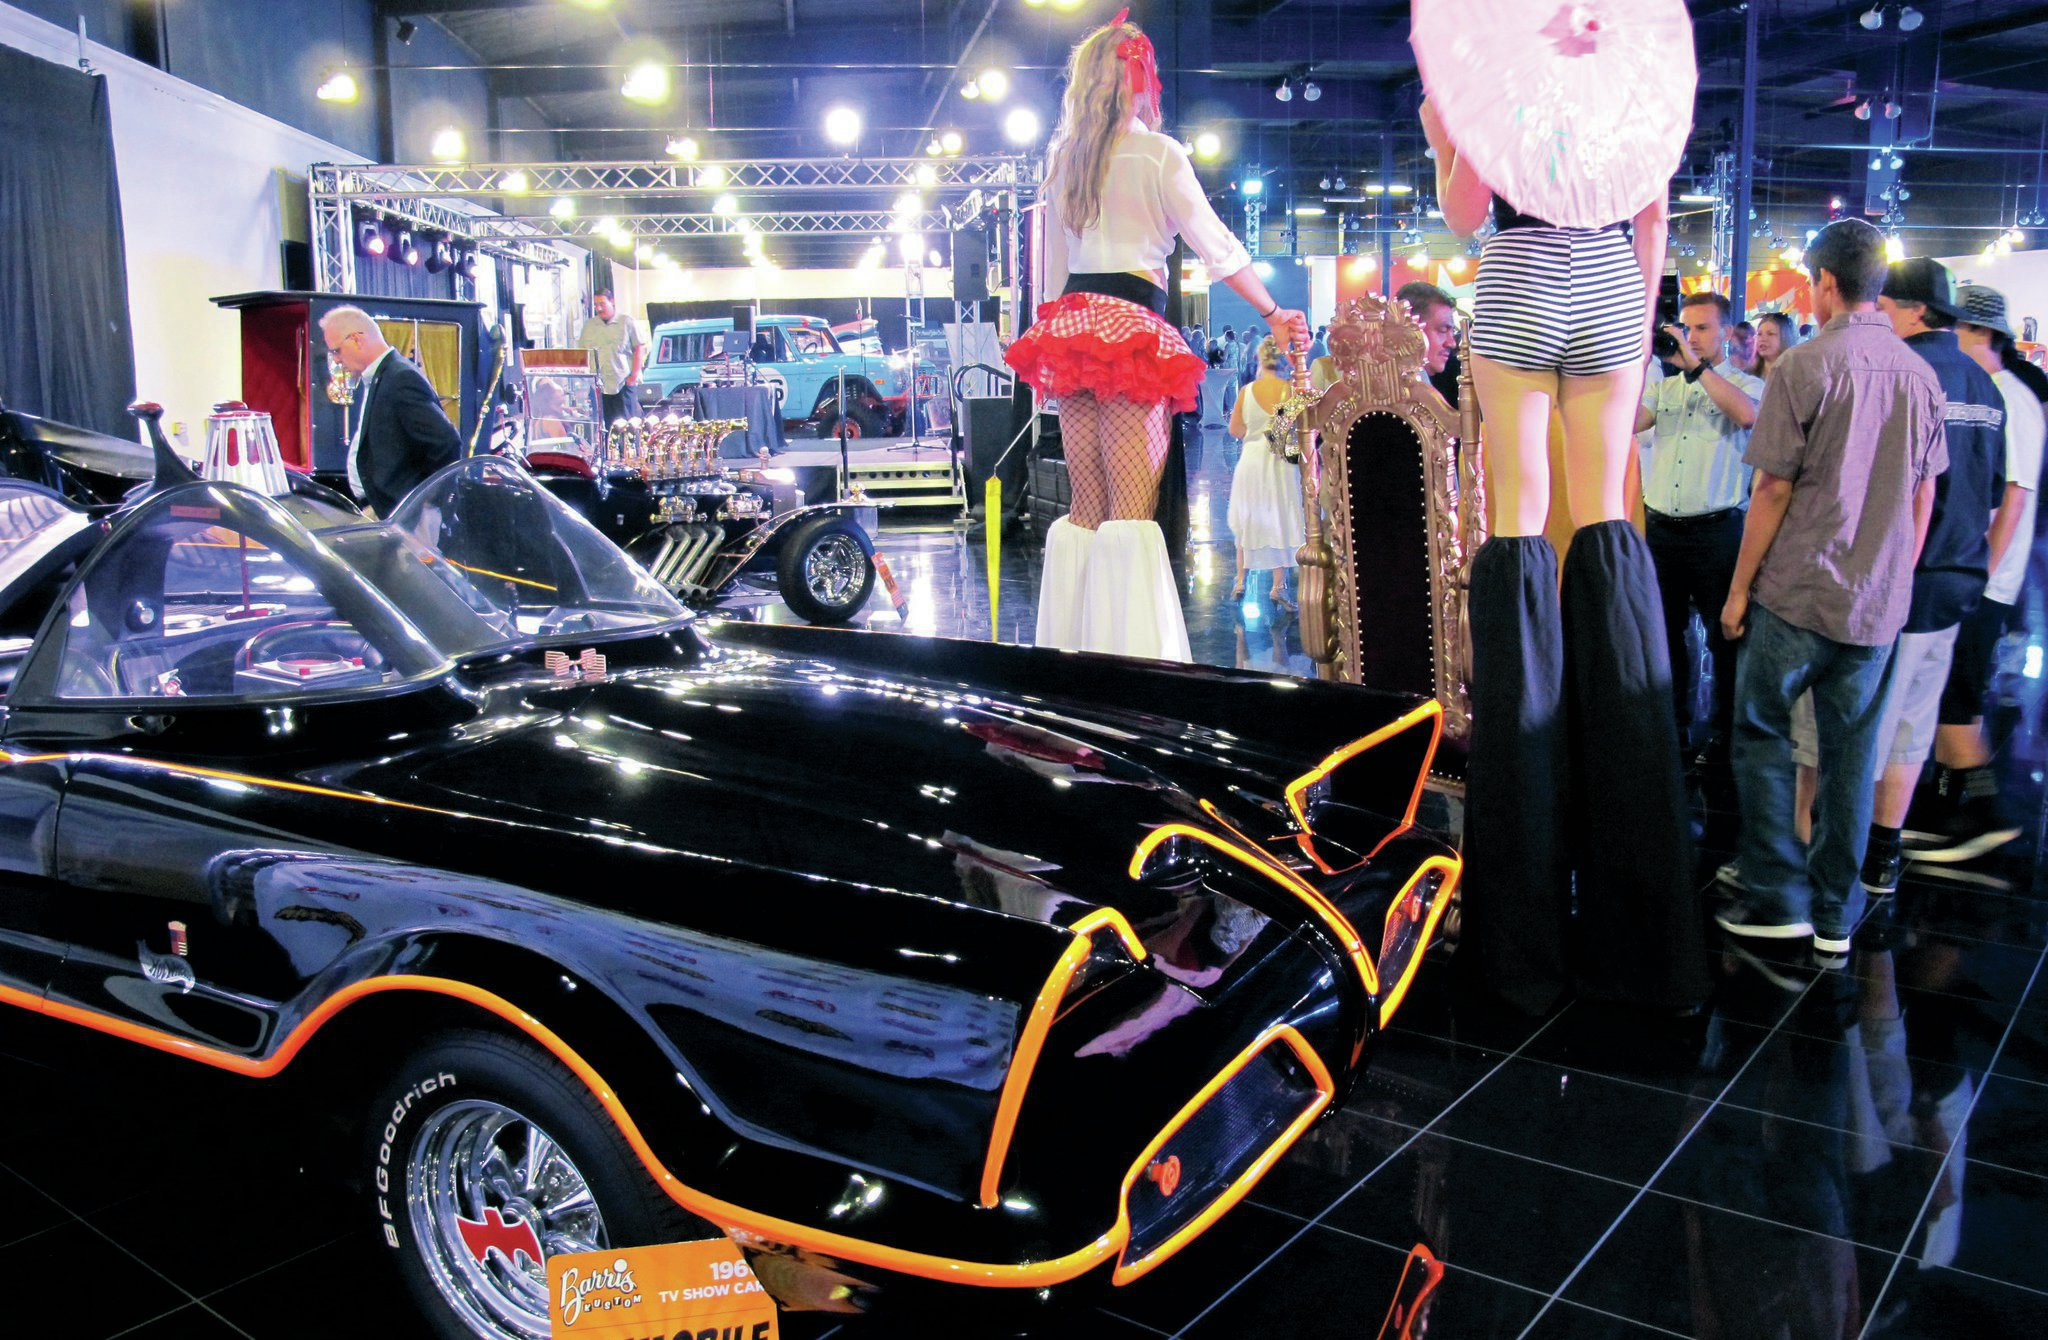 This was the scene that greeted partygoers as they entered Galpin Auto Sports for the Barris shindig. It was wild. We weren't quite sure what was going on with the super-tall models until we saw that Barris was holding court in front of the Batmobile while fans could have their pictures taken with him—and those leggy models.